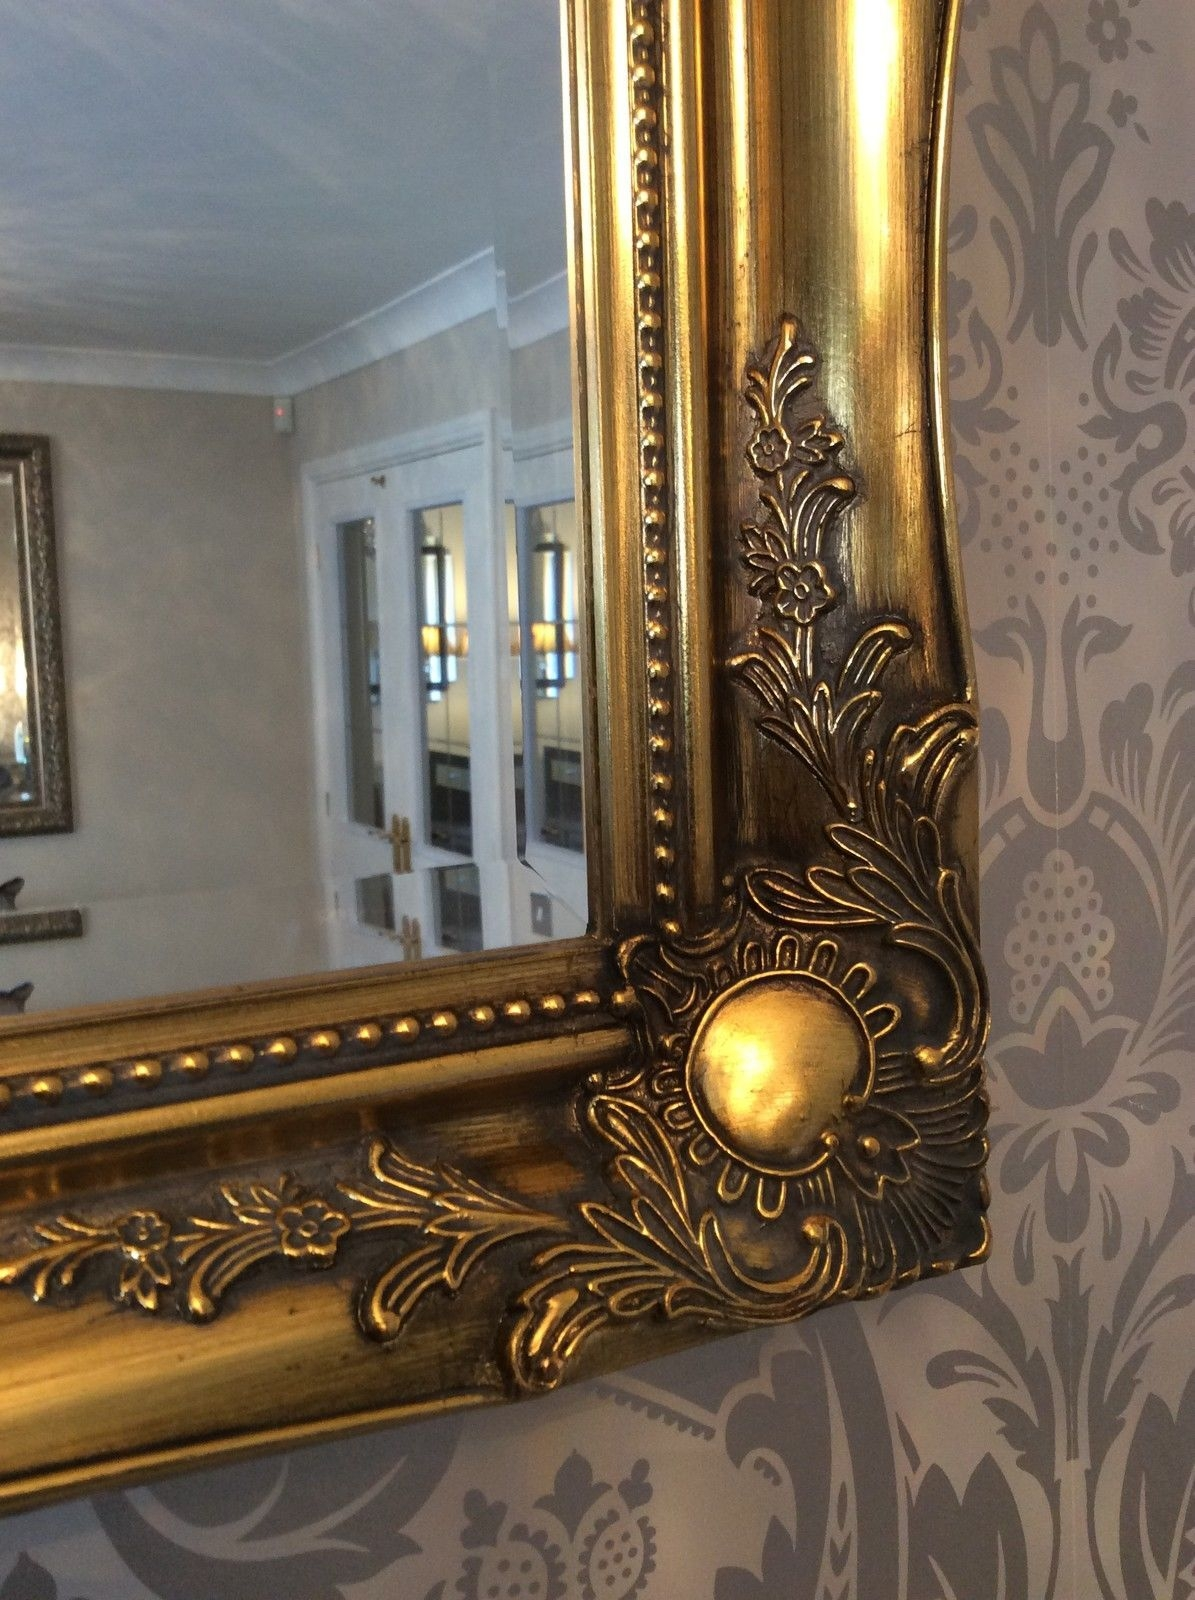 Antique Gold Shab Chic Ornate Decorative Over Mantle Gilt Wall Throughout Gold Shabby Chic Mirror (Image 1 of 15)